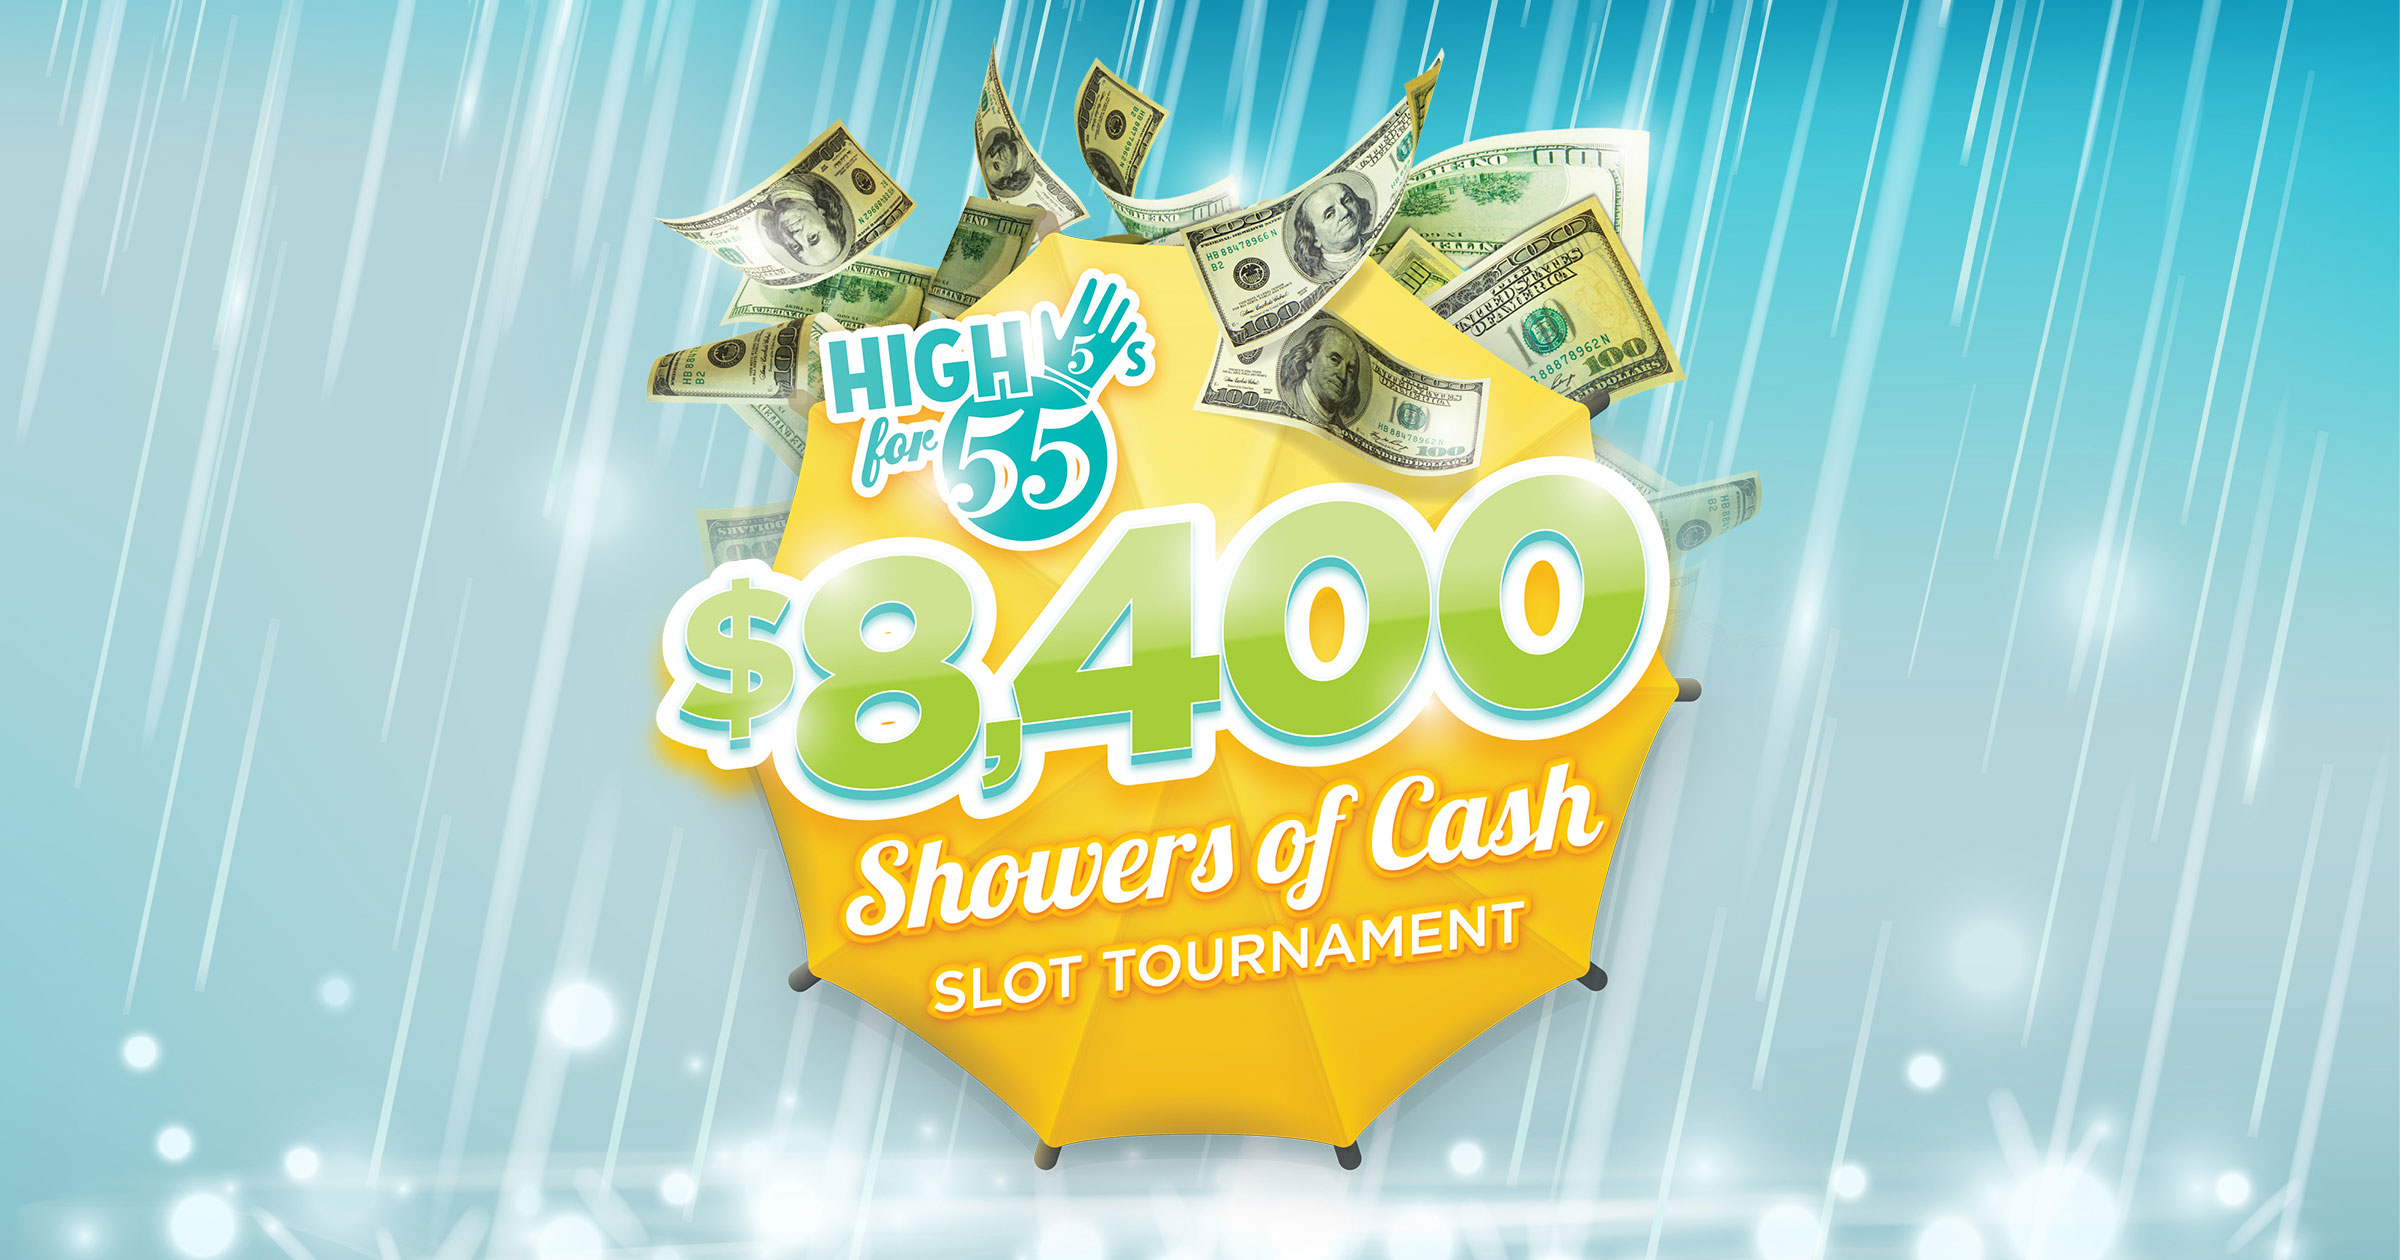 High 5s for 55s – Showers of Cash Slot Tournament